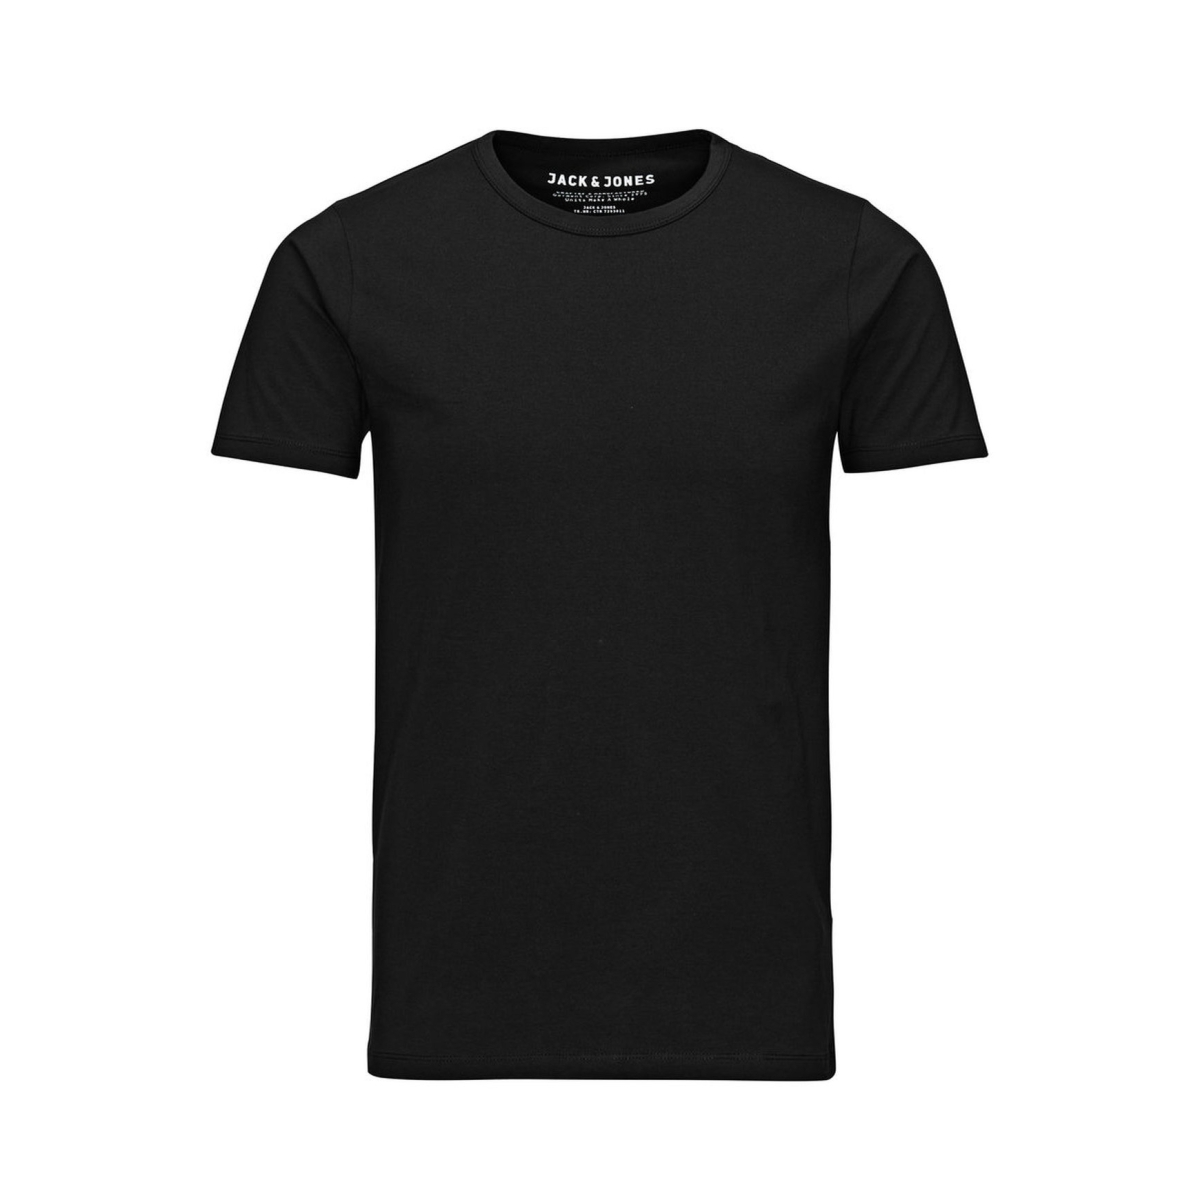 basic o-neck tee s/s noos 12058529 jack & jones t-shirt black